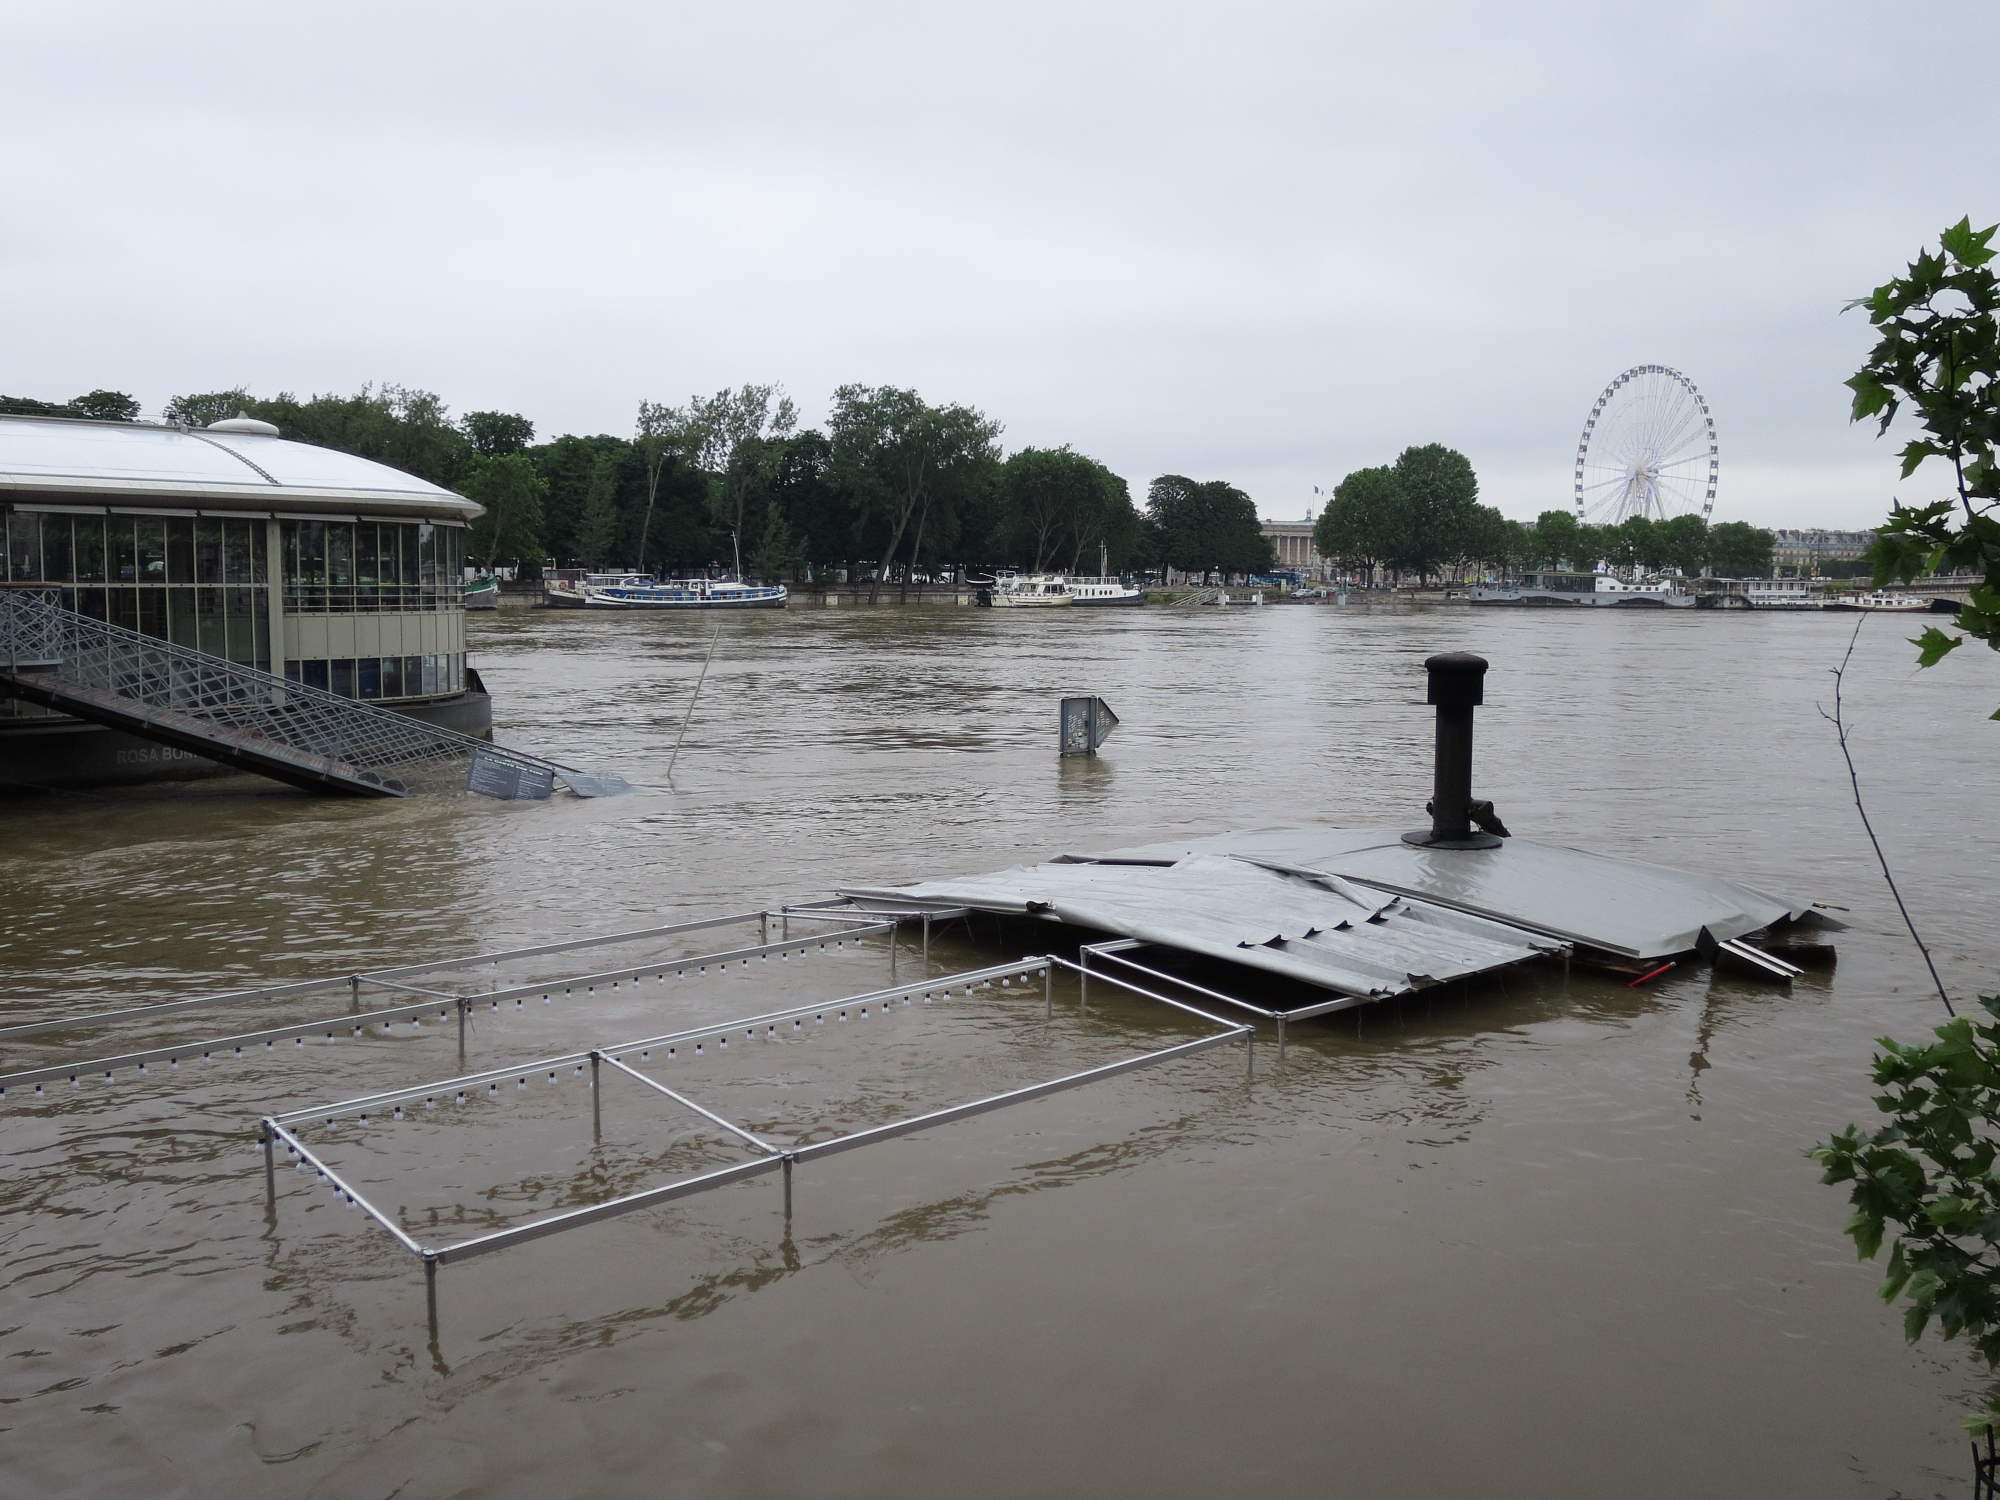 Inundated restaurant on the bank of the Seine during the Great Flood of 2016